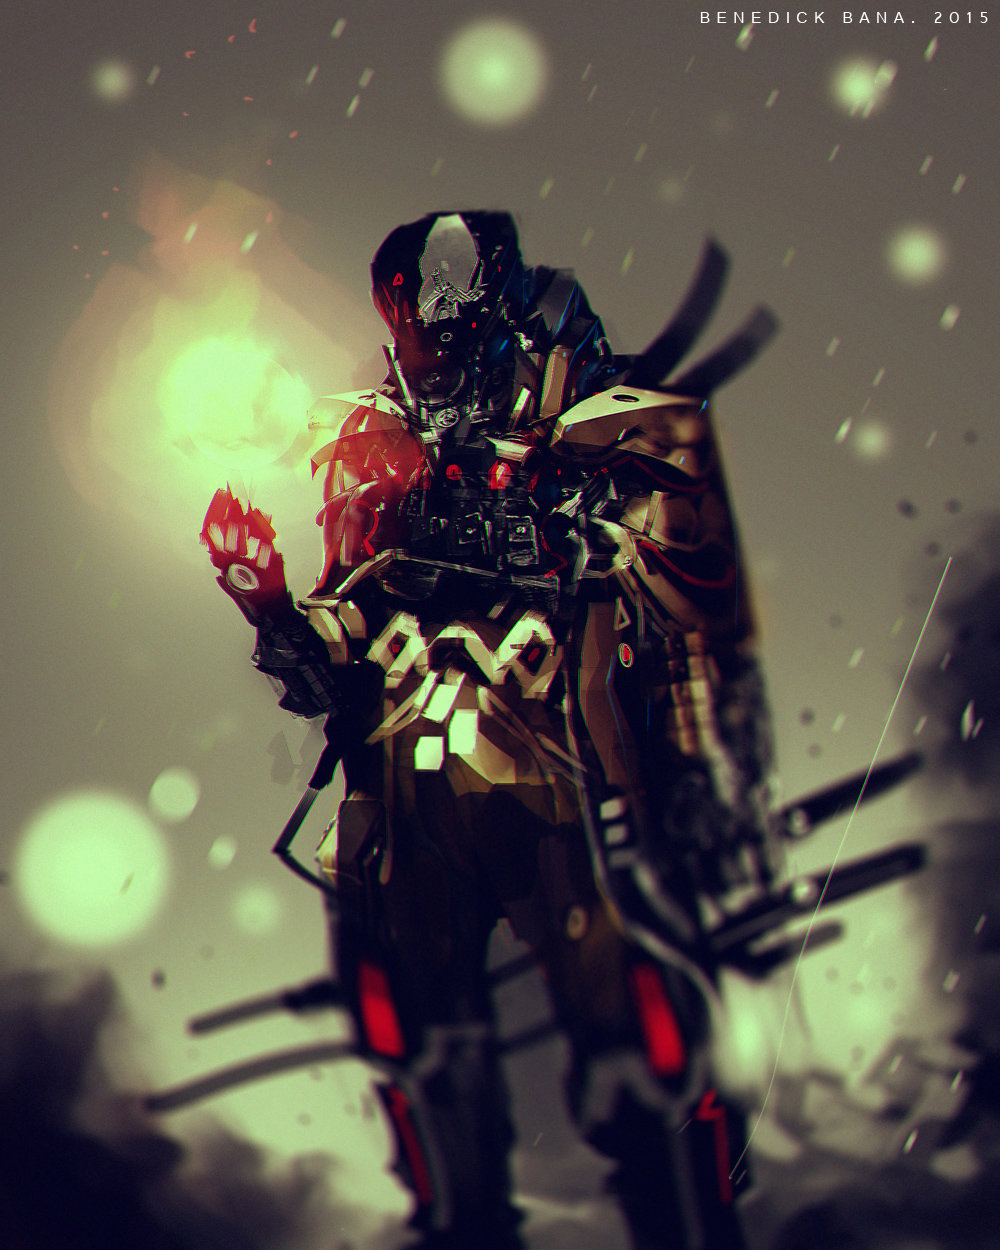 Benedick bana heavily fortified aberration lores2